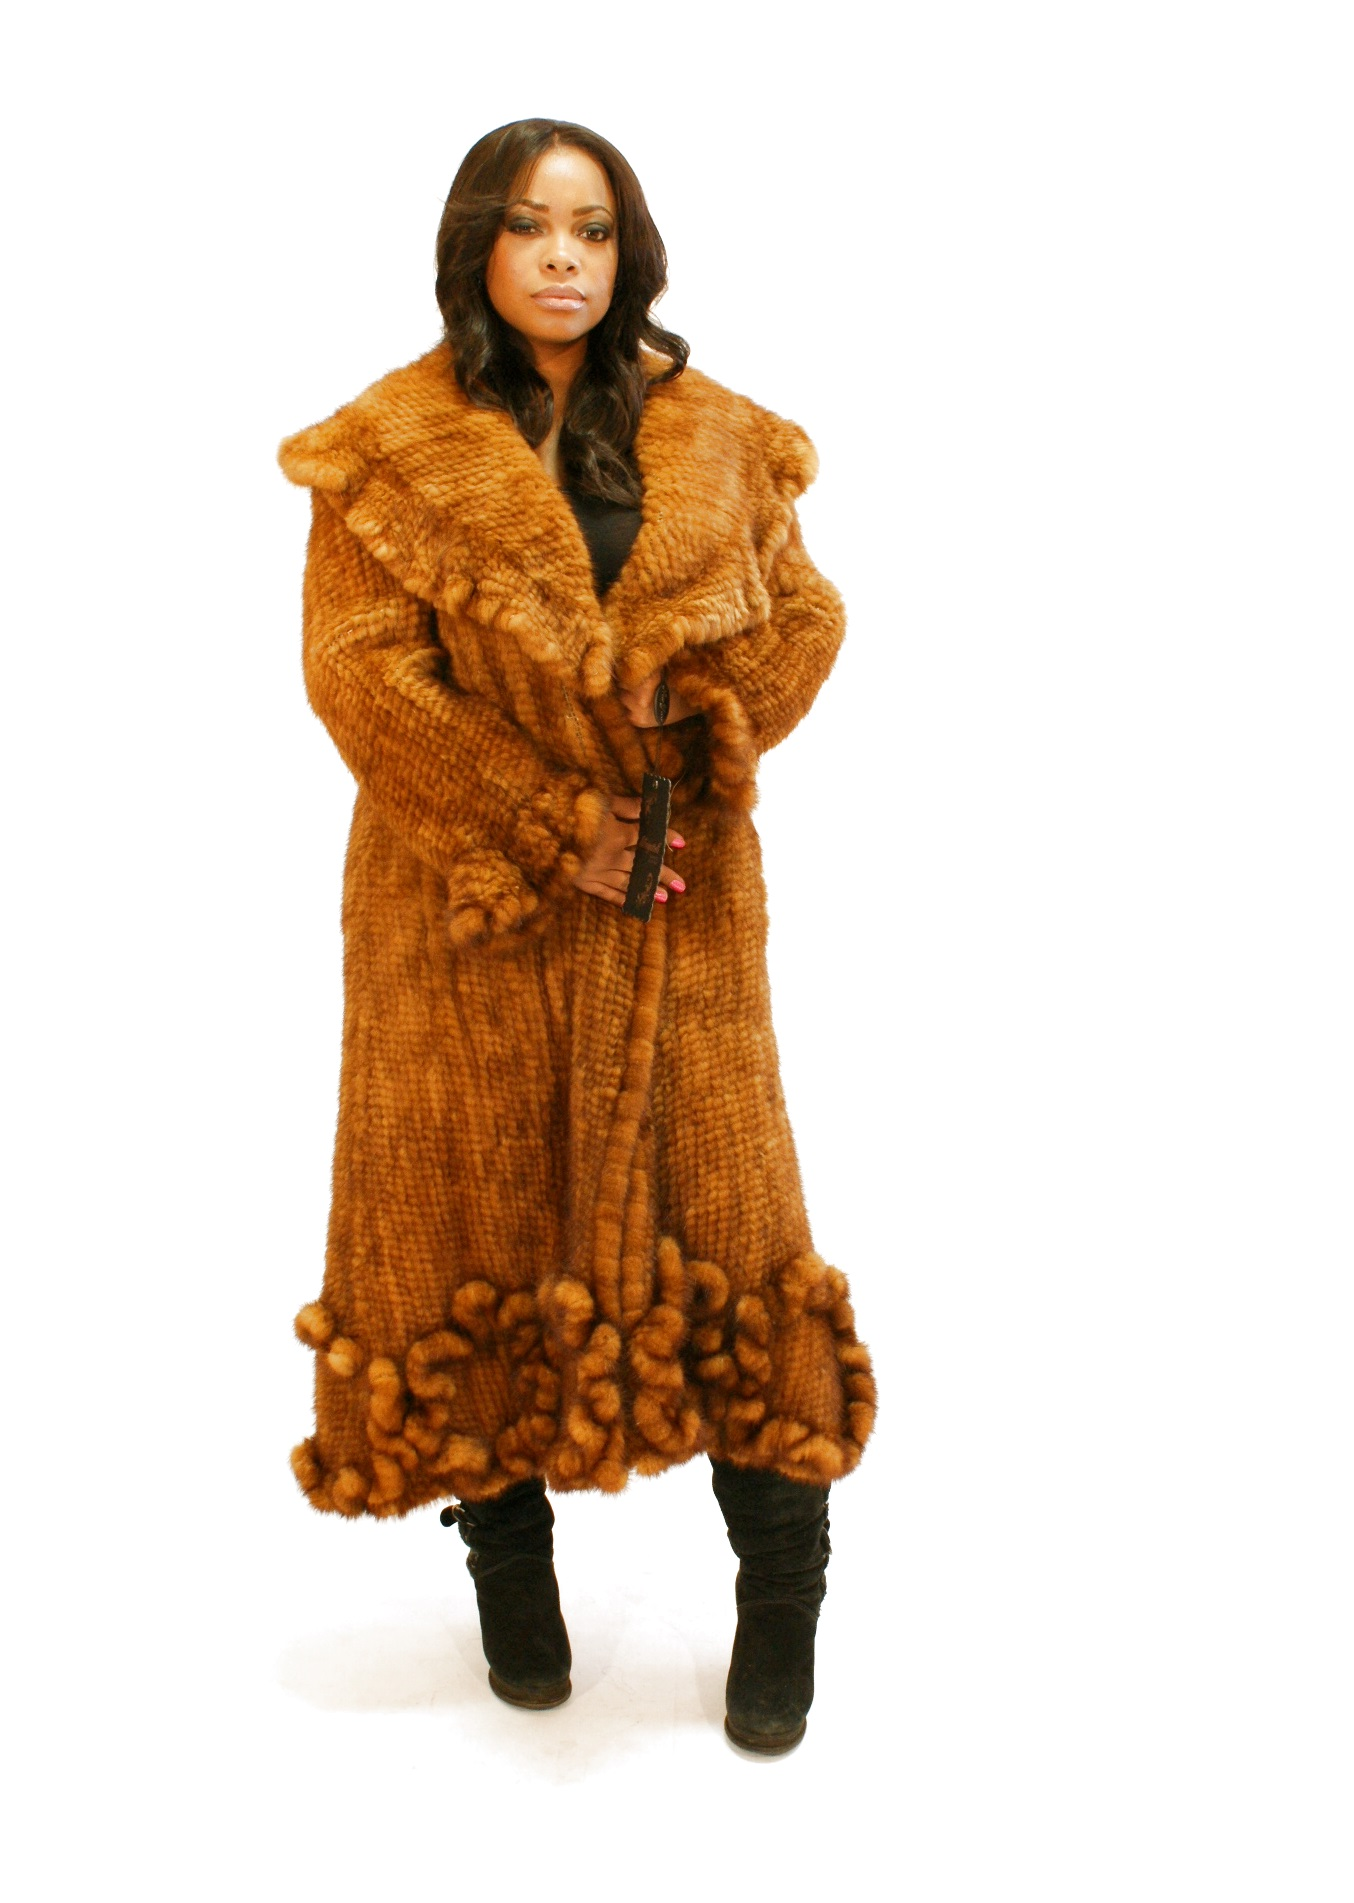 Mink Coat Value >> Ladies Knitted Whiskey Mink Fur Coat Golden Woven Furs Medium BNWT | eBay